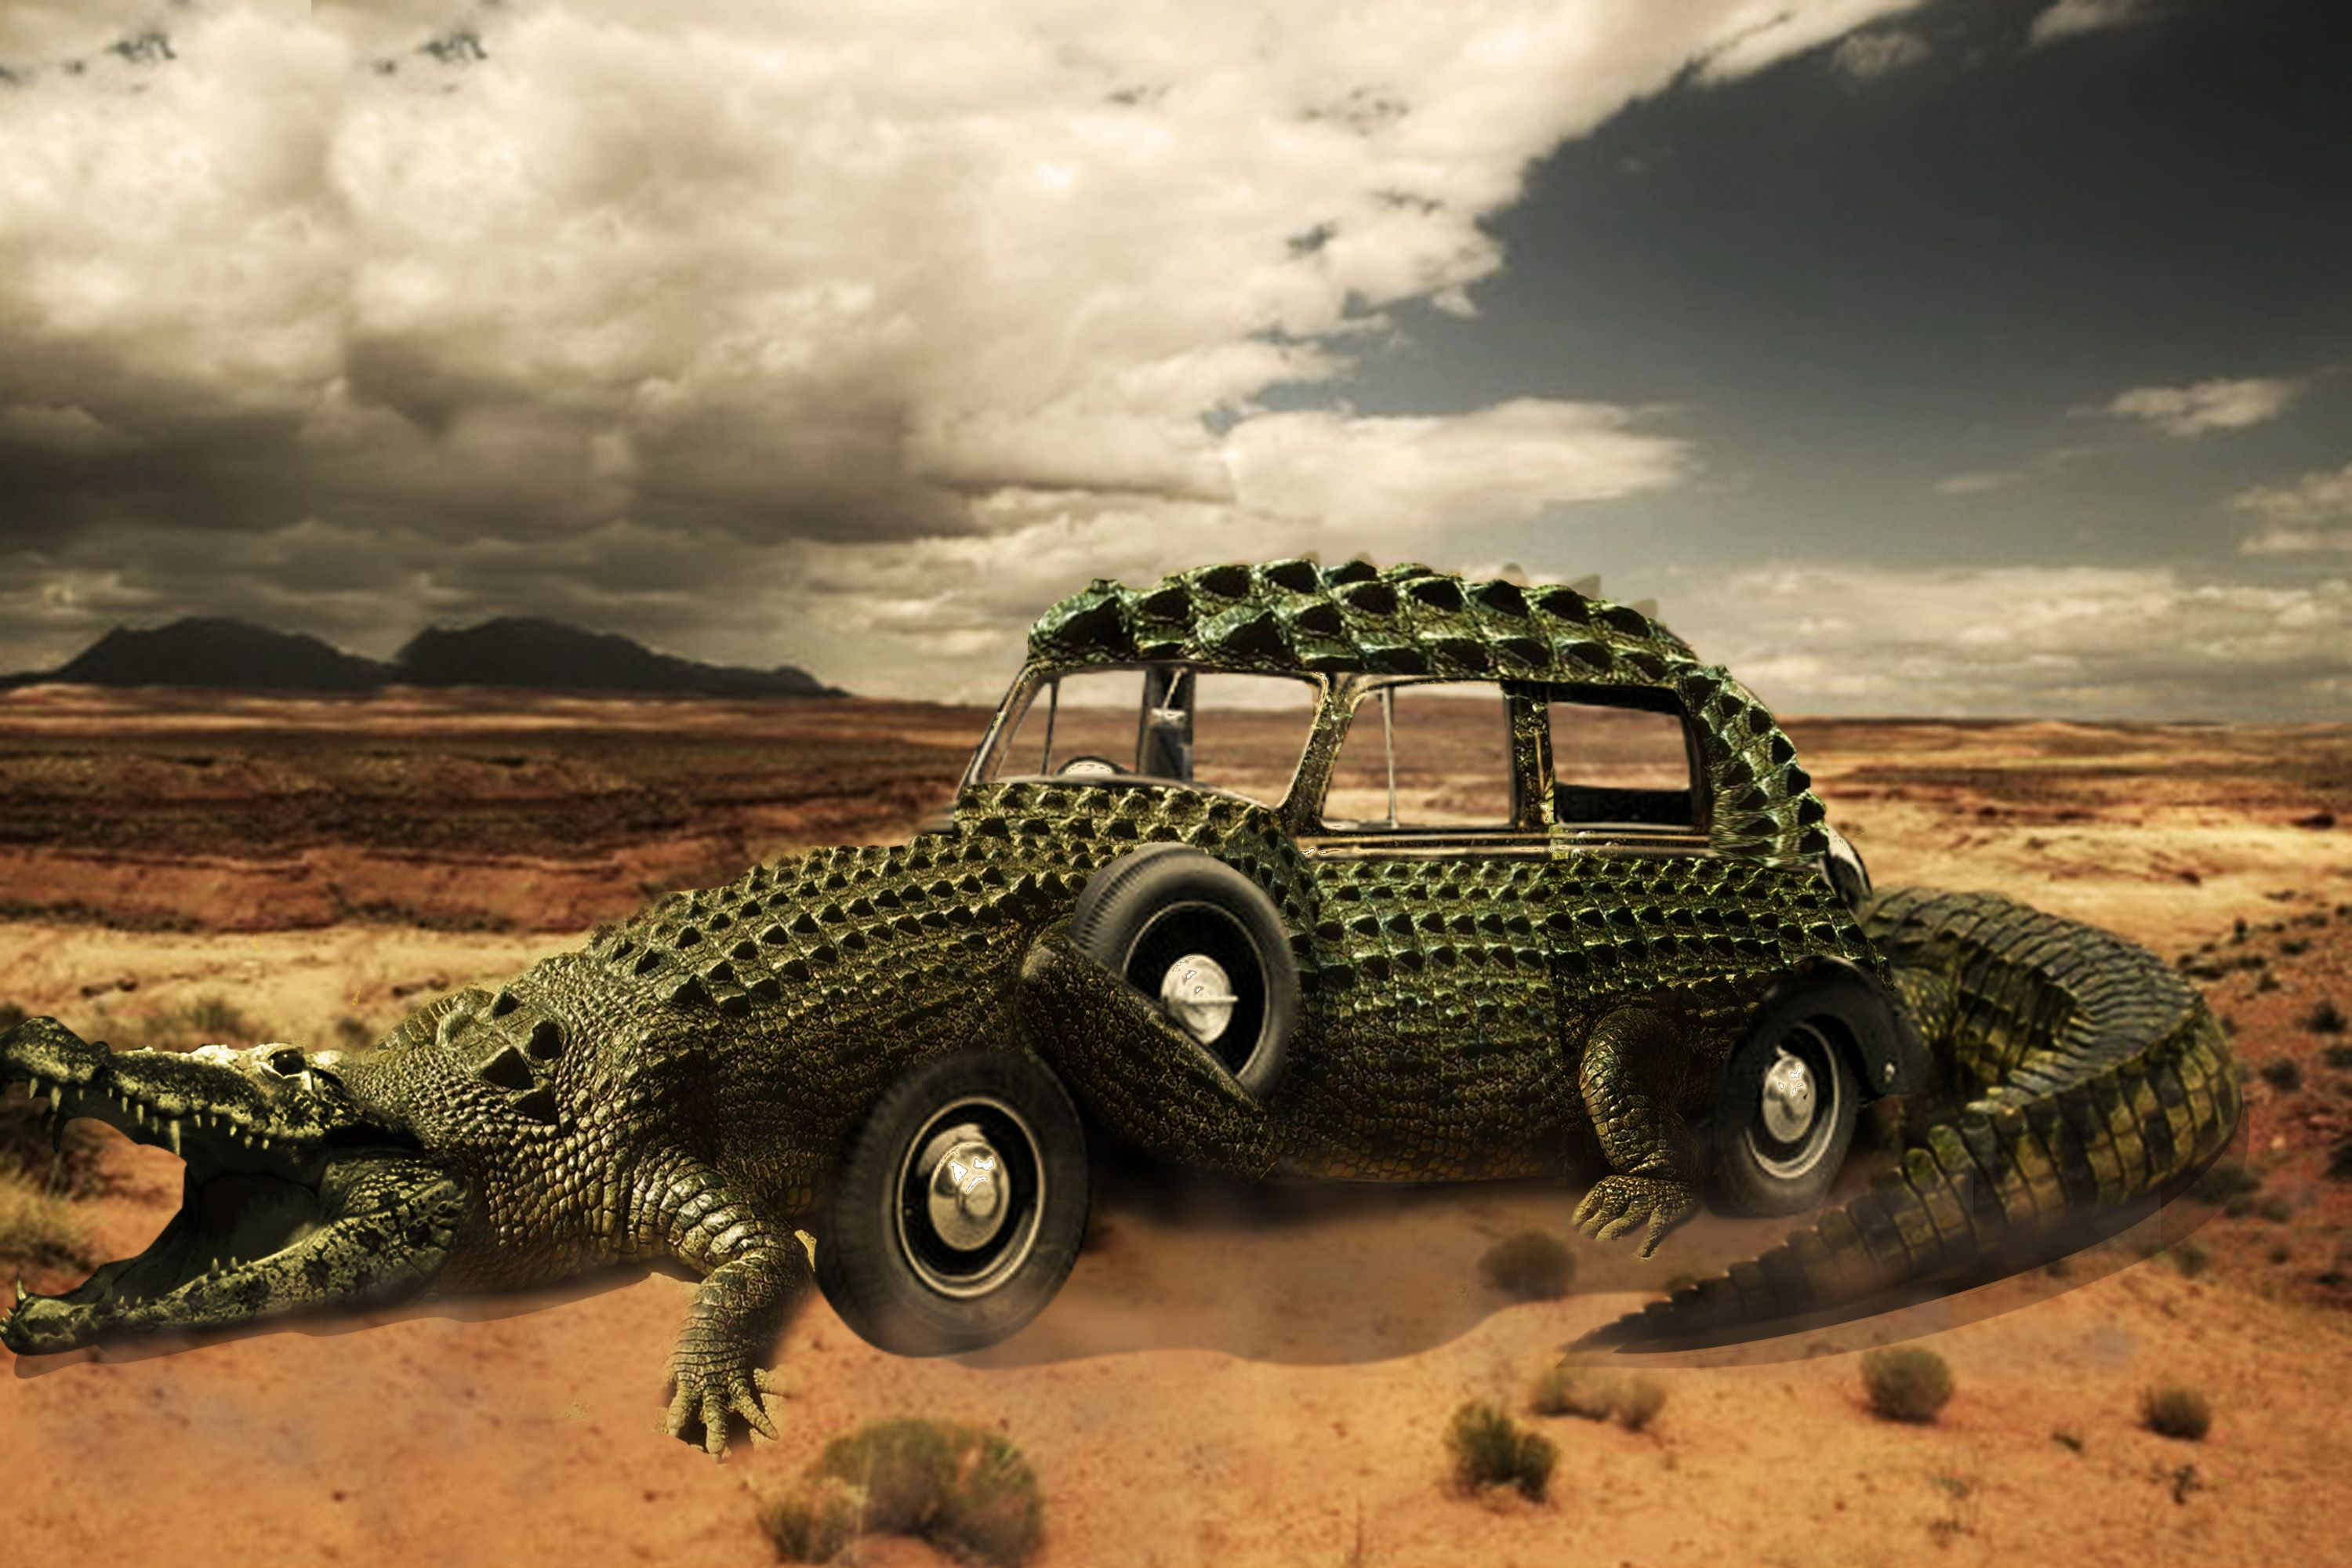 Fotomanipulacin cocodrilo cocodrilos pinterest how to create an exotic crocomobile in photoshop currently viewing photoshop tutorials from photoshop lady baditri Images